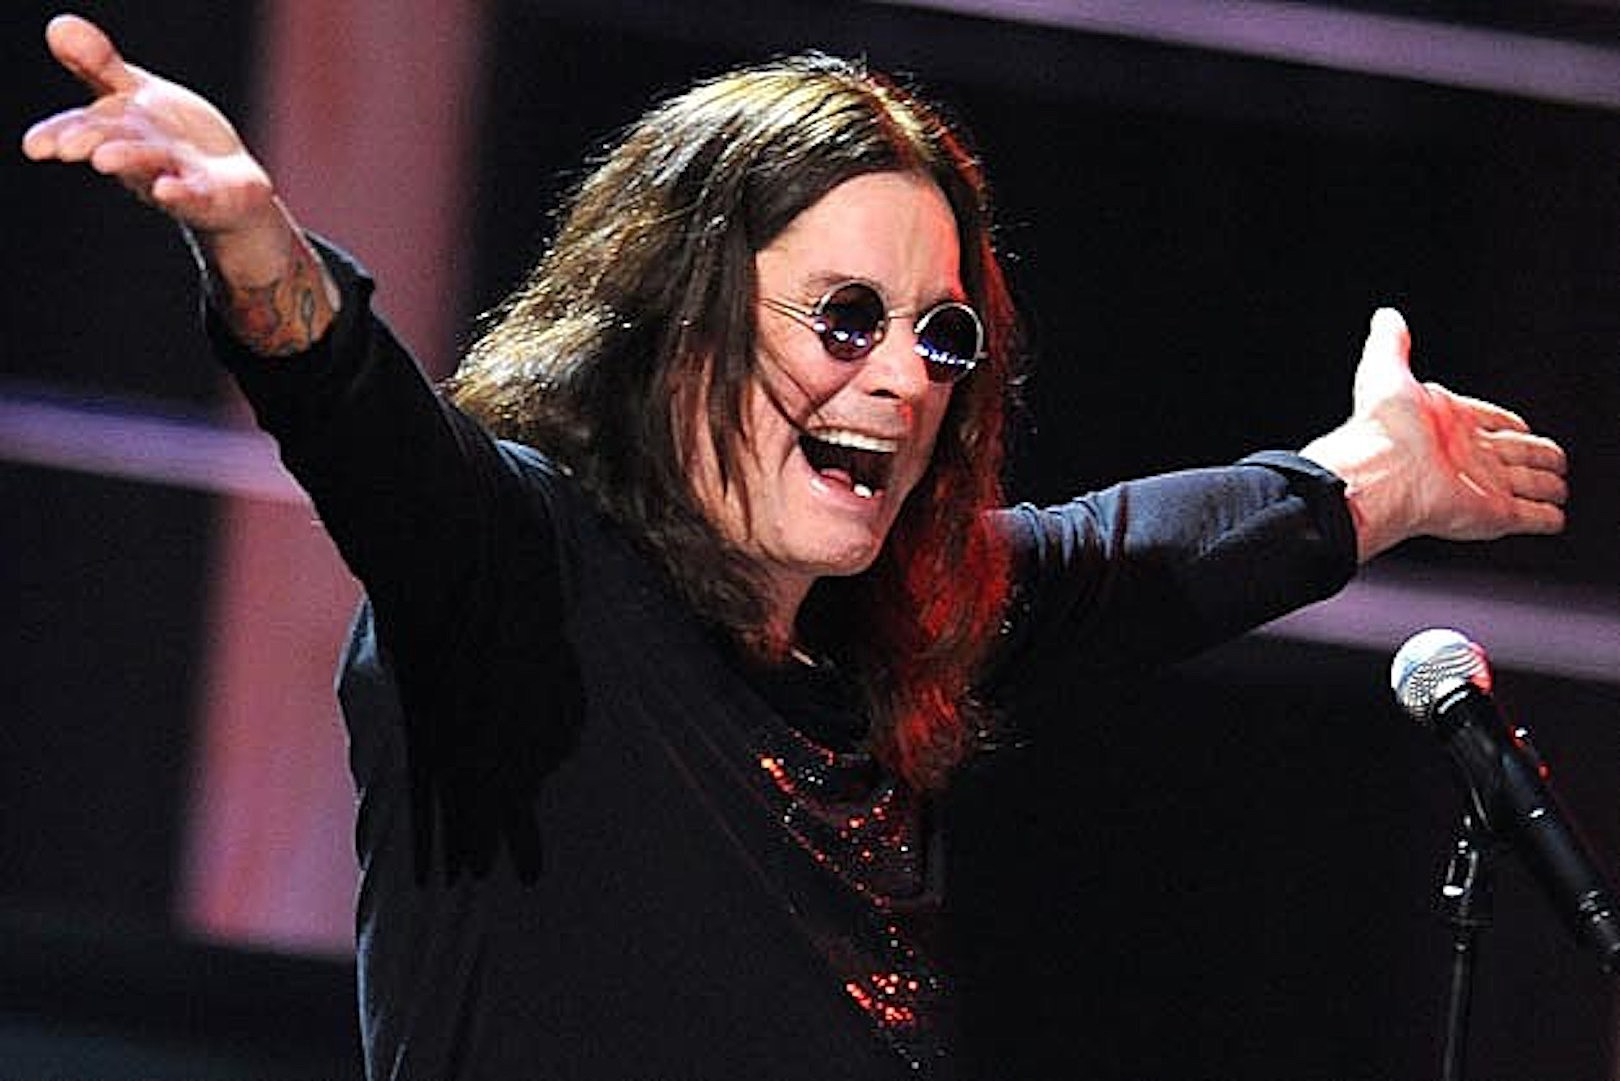 Ozzy Osbourne Suffers Serious Injury, All 2019 Shows Postponed